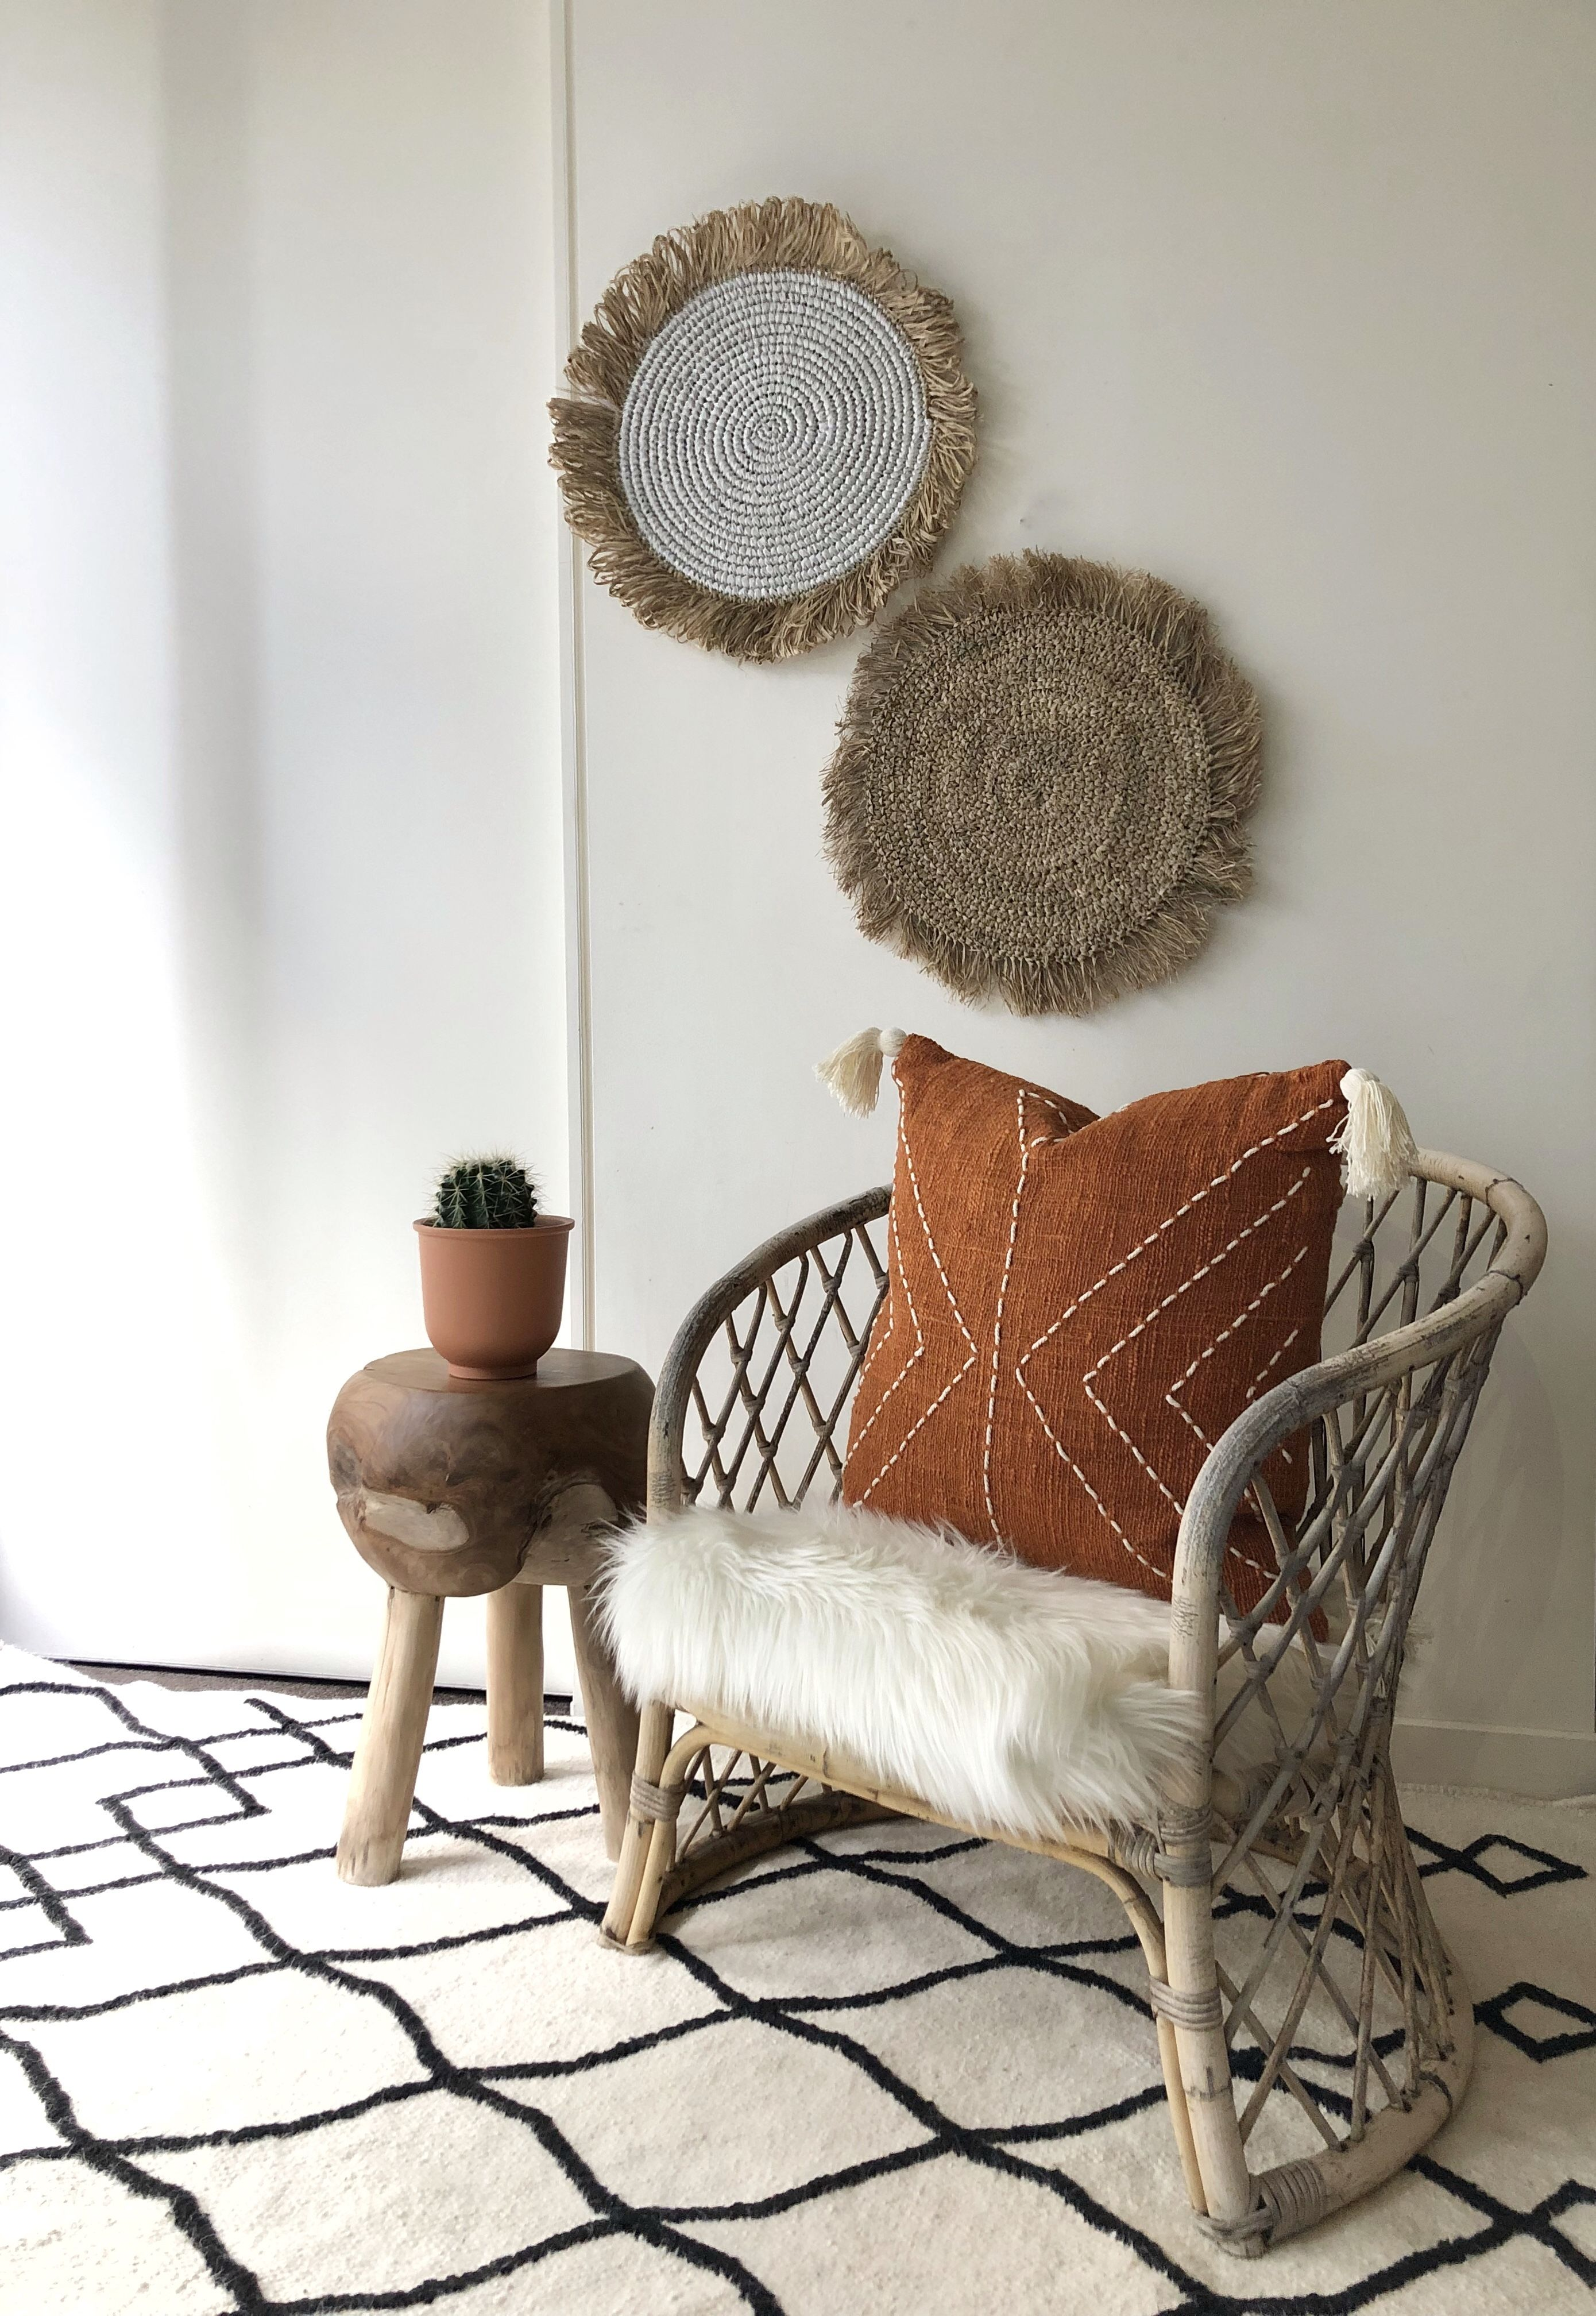 Burnt Orange Pillow With Tassels Organic Natural Raw Cotton Hand Dyed Rust Colour With Stitch Finish 50x50 20 Australia Cushions In 2020 Living Room Leather Swivel Chair Living Room Grey Chair Bedroom